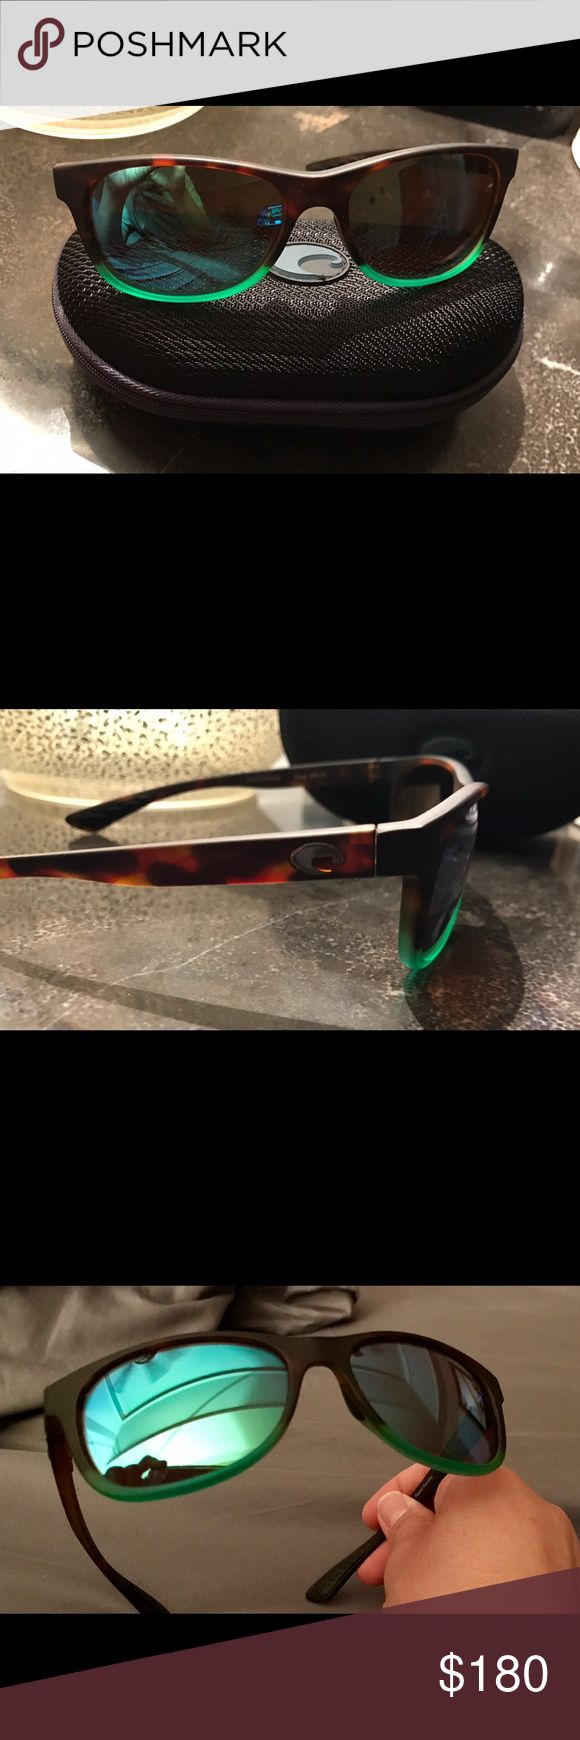 Costa Del Mar Sunglasses 💯% authentic Polarized Costa Del Mar sunglasses.   Tortuga fade to a green with green mirrored plastic lens.  I only wore them once for about an hour.  No scratches, practically new.  Feel free to ask any questions Costa Accessories Sunglasses